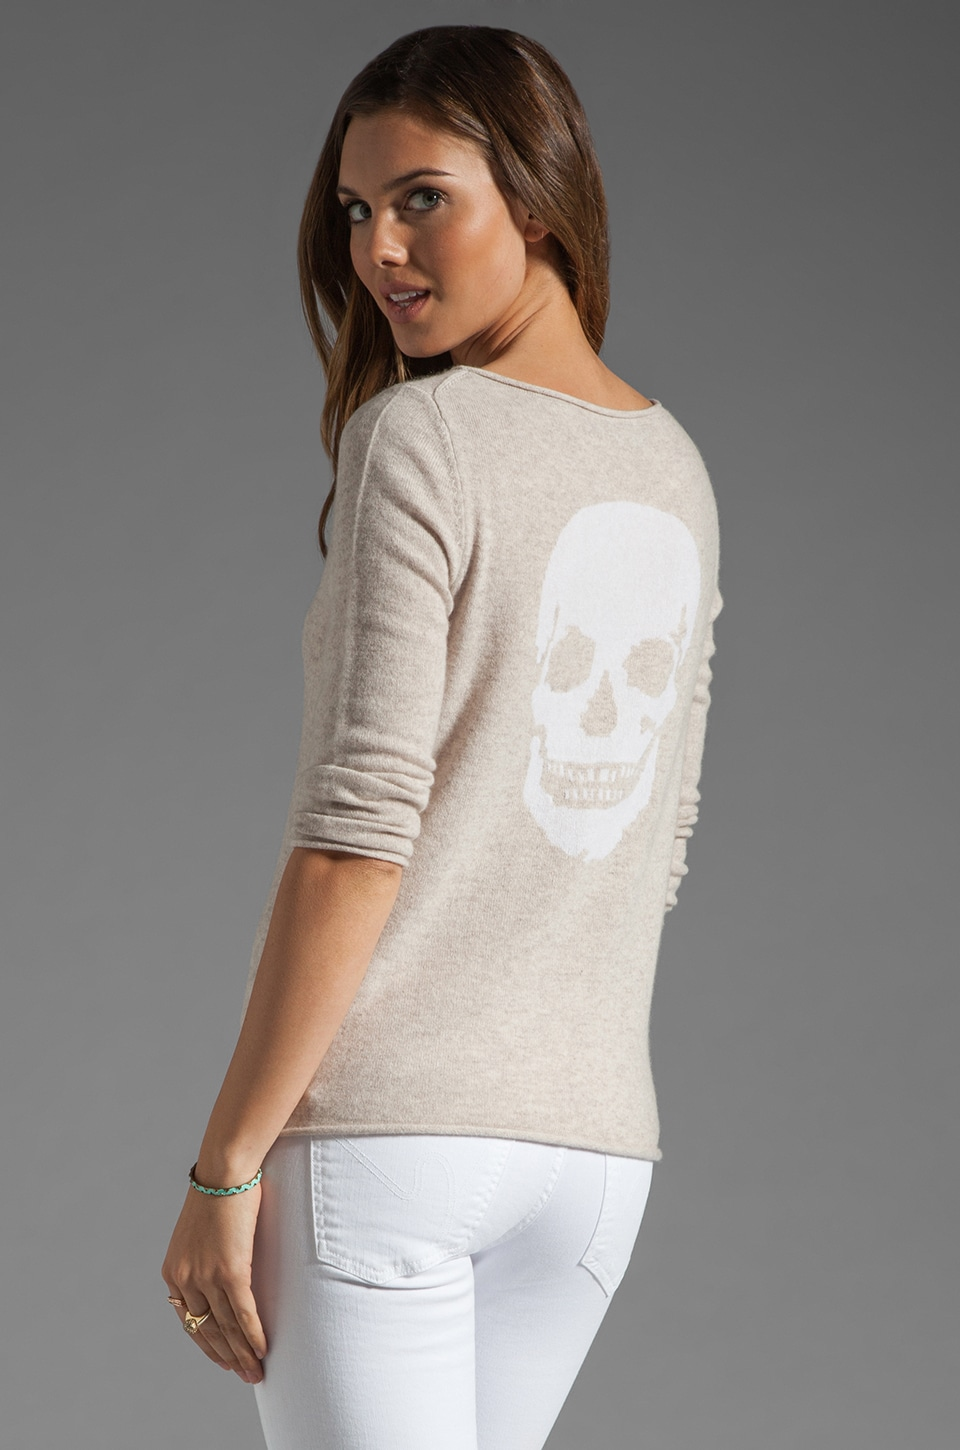 360 Sweater Jackie Lee Skull Cashmere Sweater in Buff/Ivory